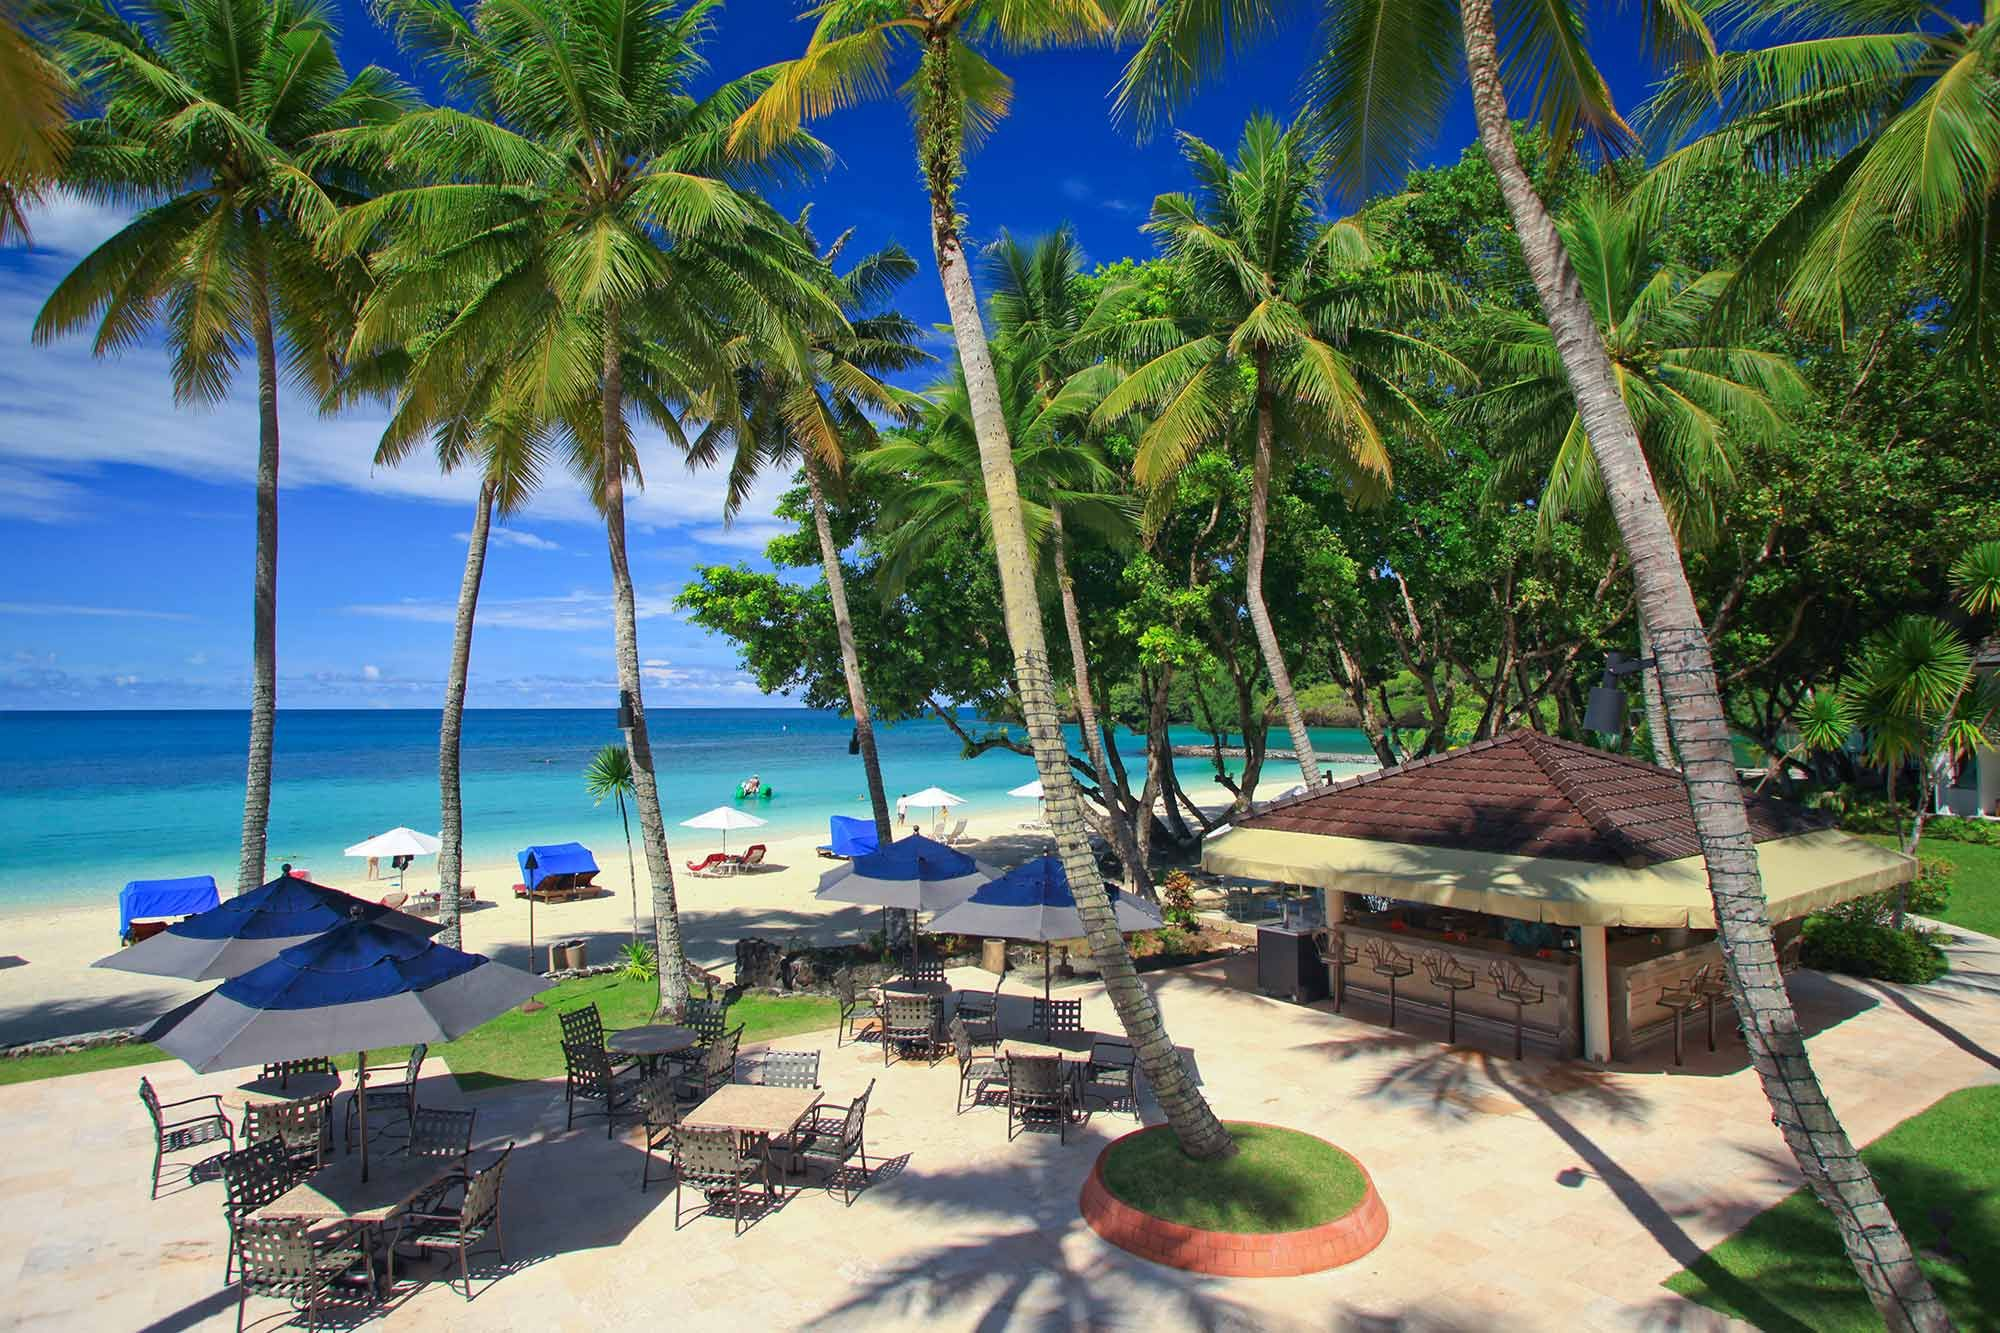 Palau Pacific Resort Is A Luxury Offering Tropical Accommodations Spa Services Private Beach And On Site Dining This Island Hotel